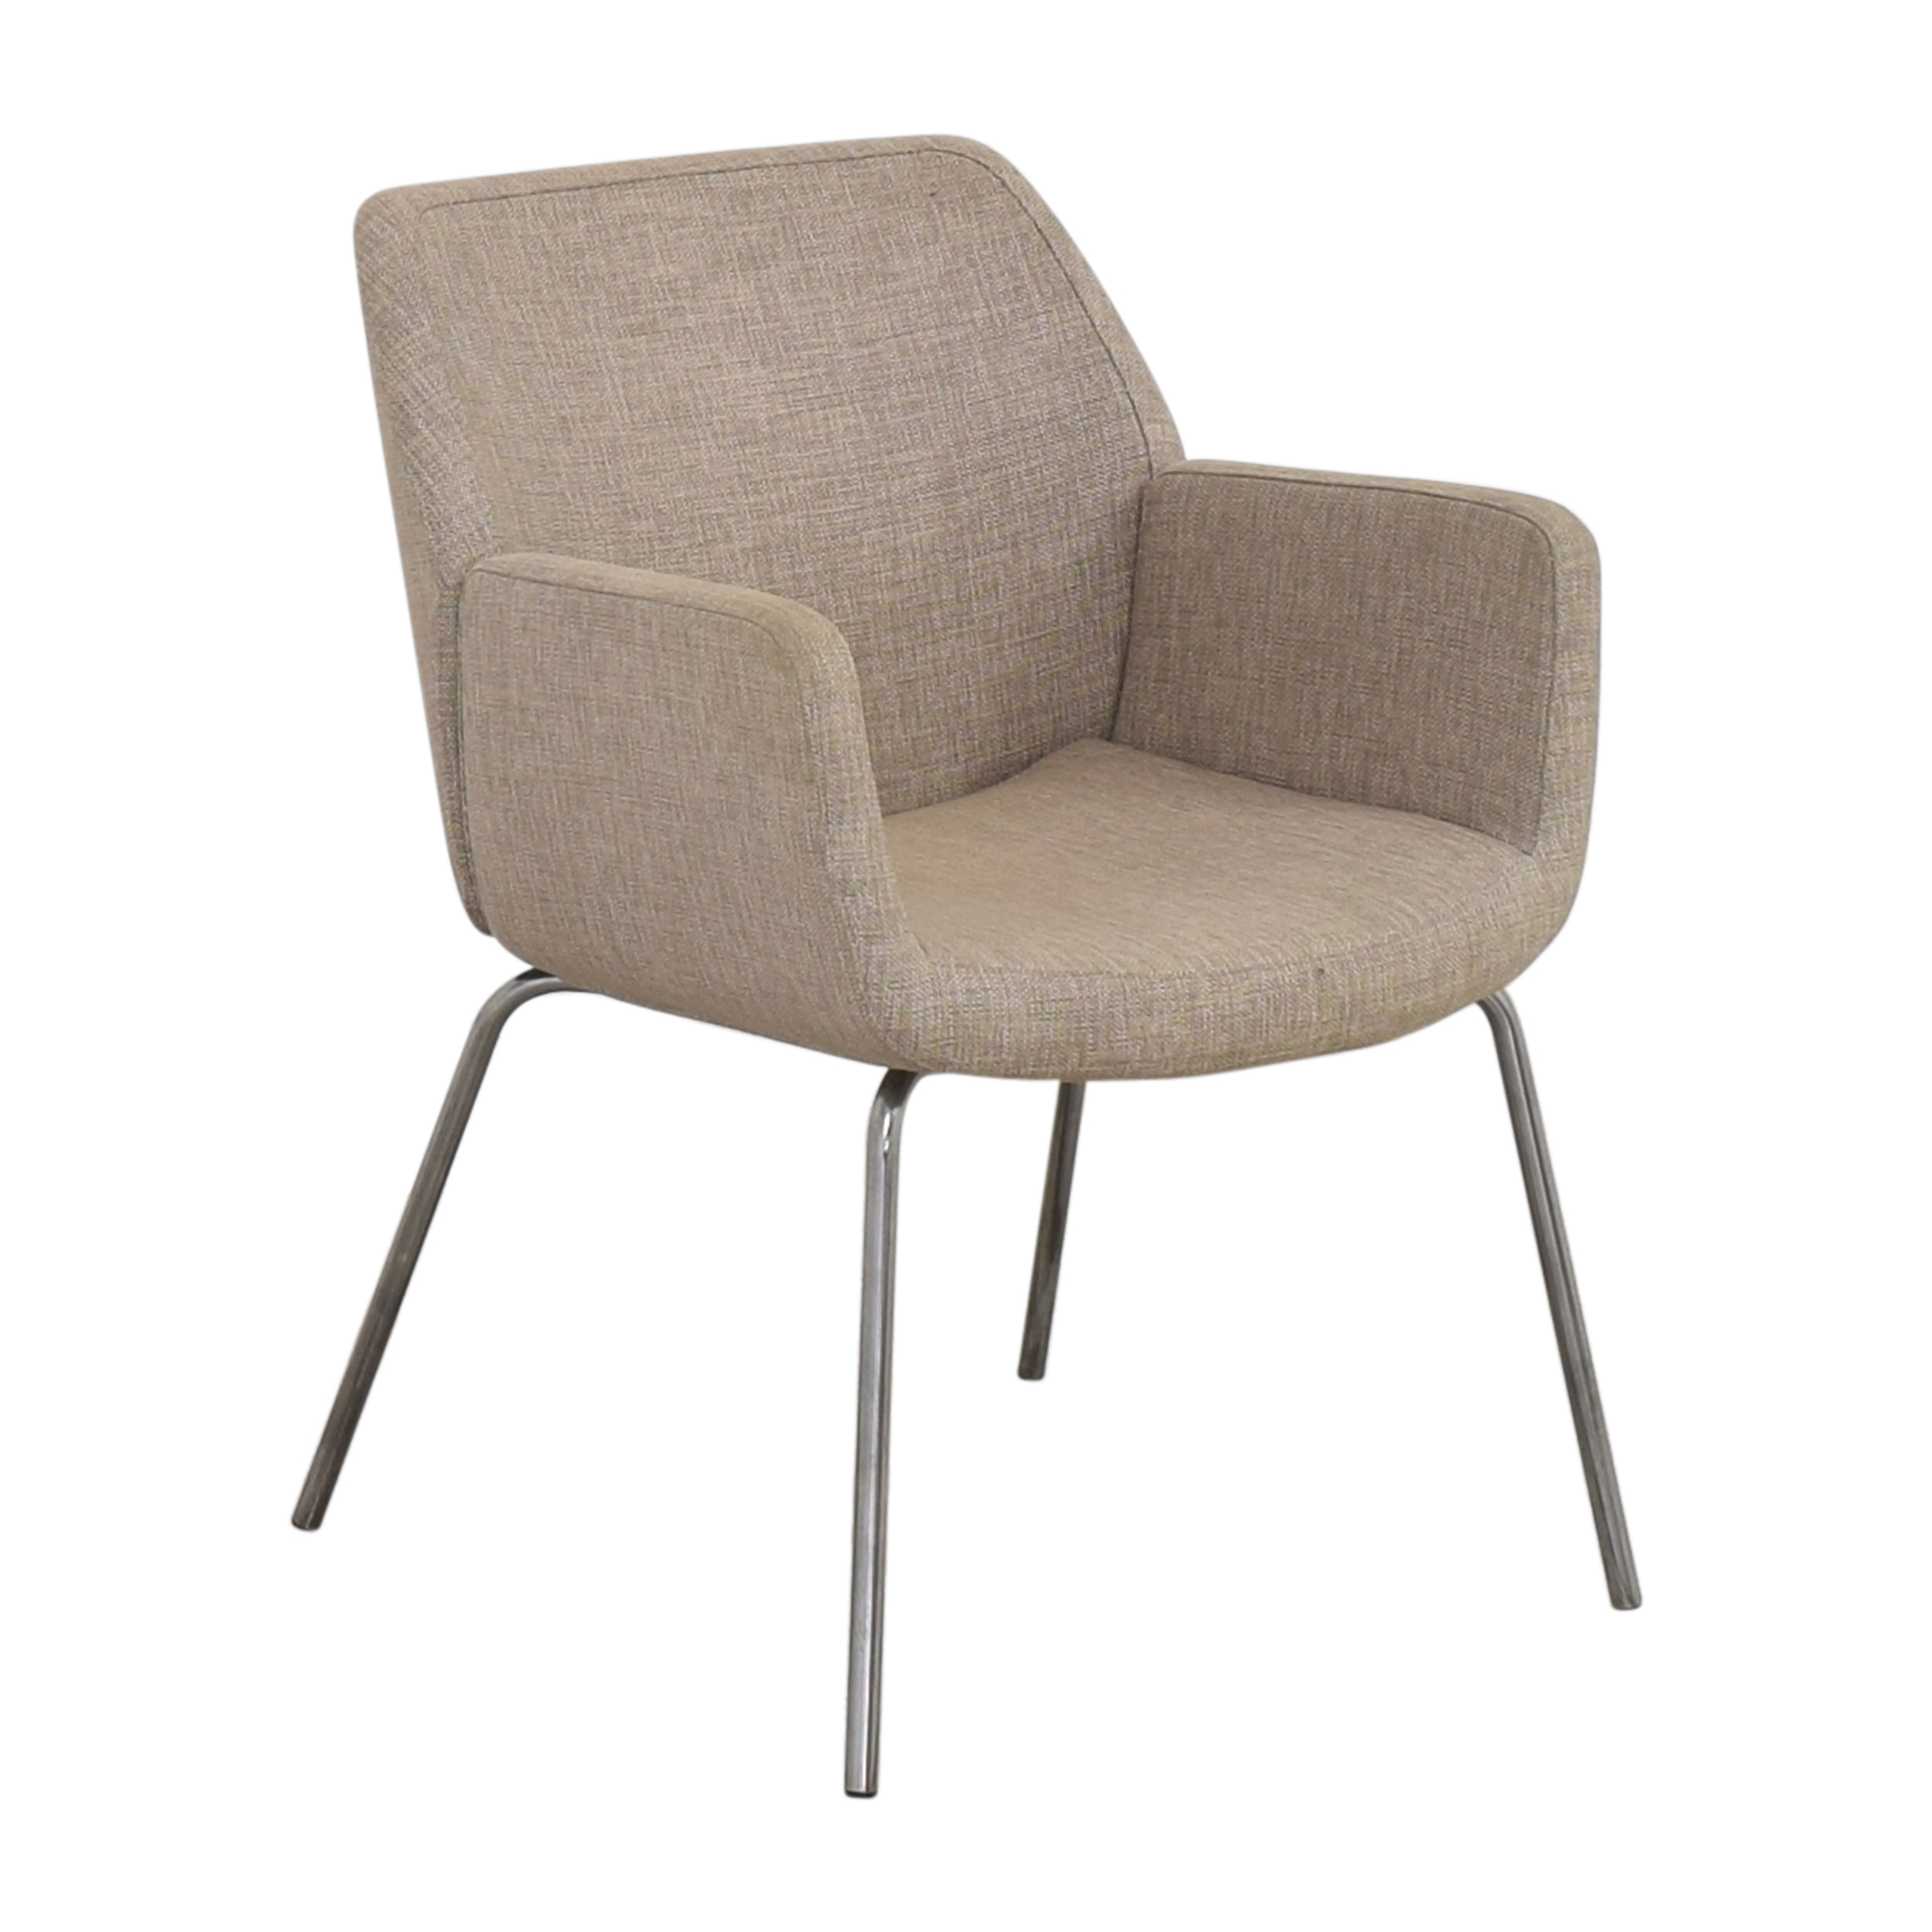 Steelcase Coalesse Bindu Side Chair on sale